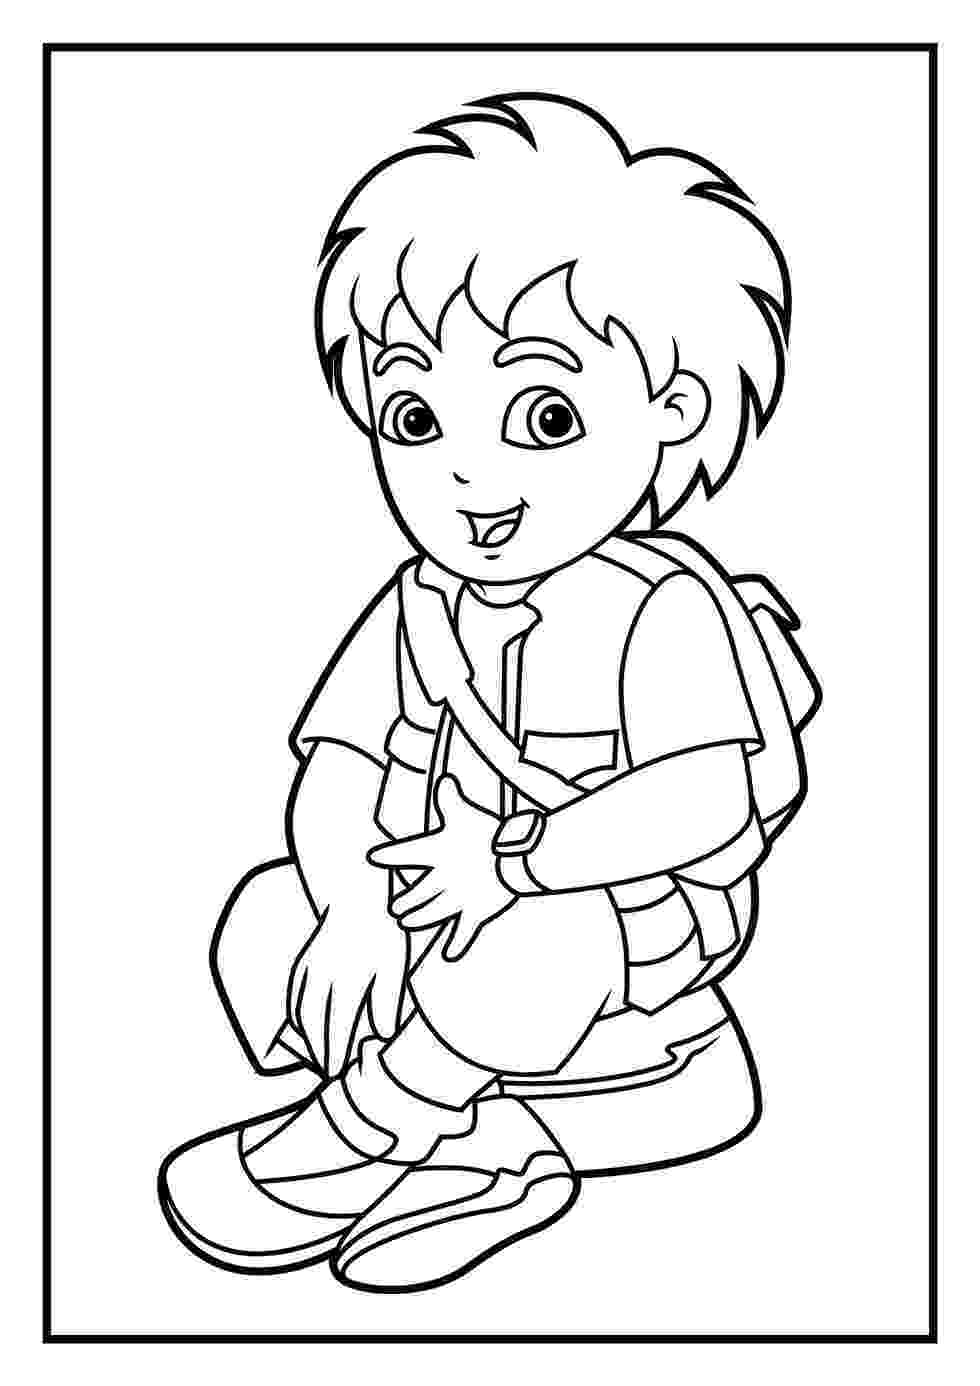 printable coloring pictures christmas pictures coloring pages to download and print printable coloring pictures